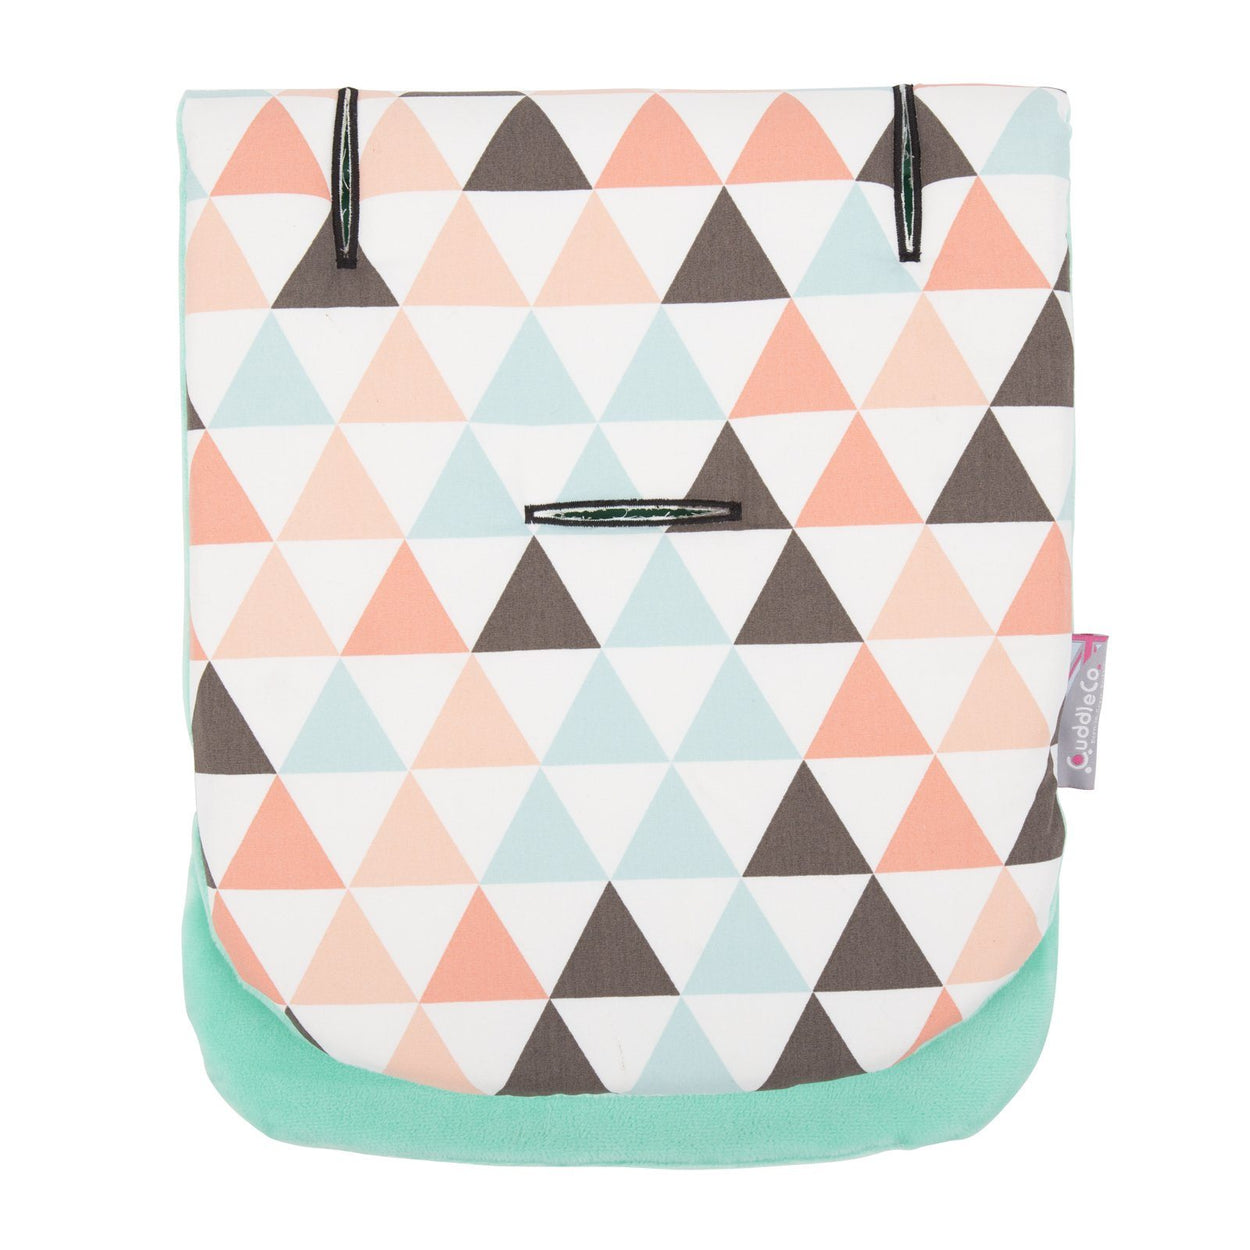 Comfi-Cush Memory Foam Stroller Liner - Triangles On The Go cuddleco